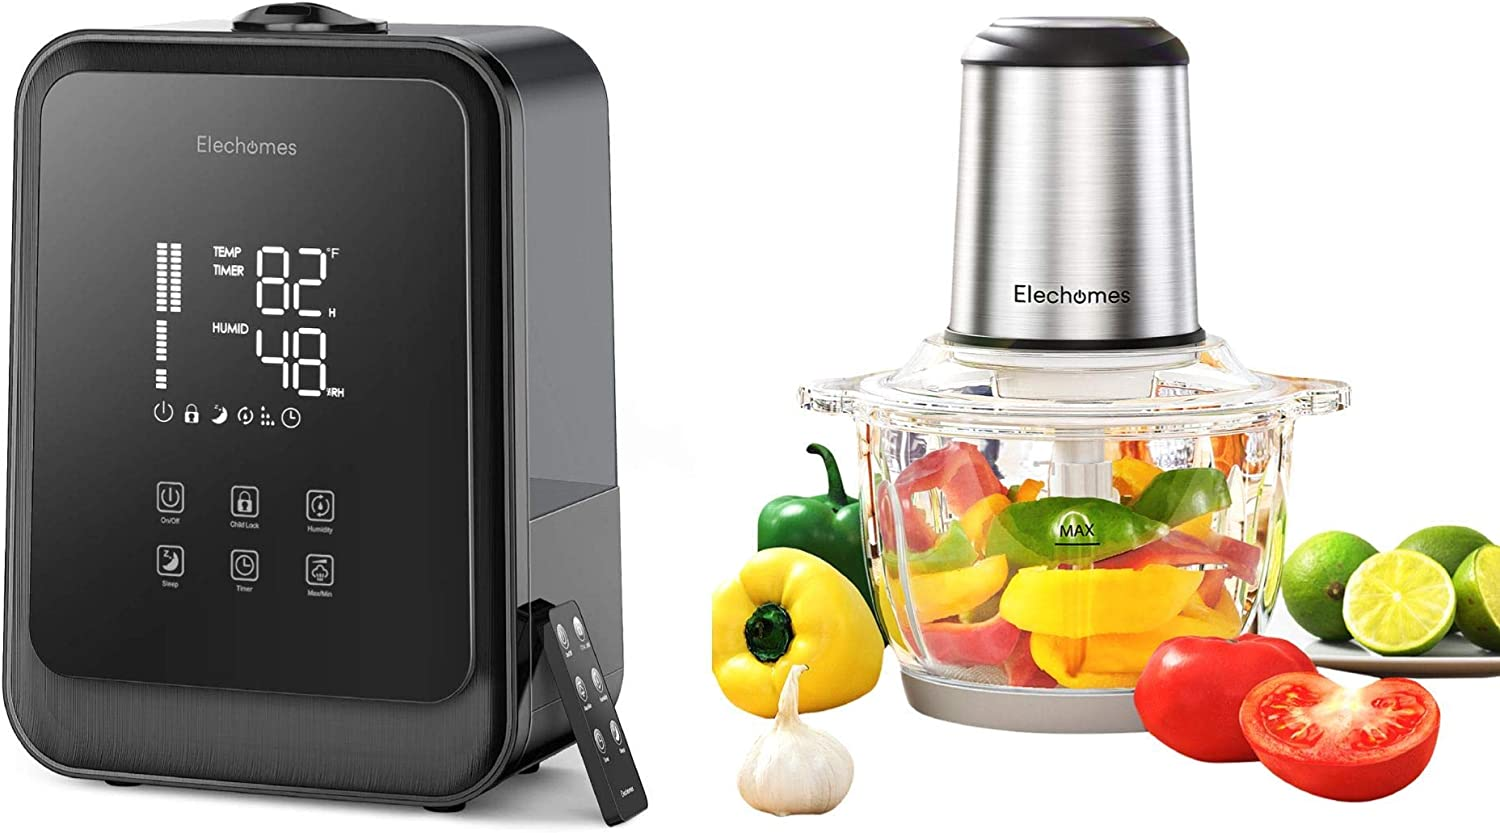 Elechomes HTJ-2119 4.5L Cool Mist Humidifier and Elechomes 8 Cup Electric Food Chopper & Processor Bundle